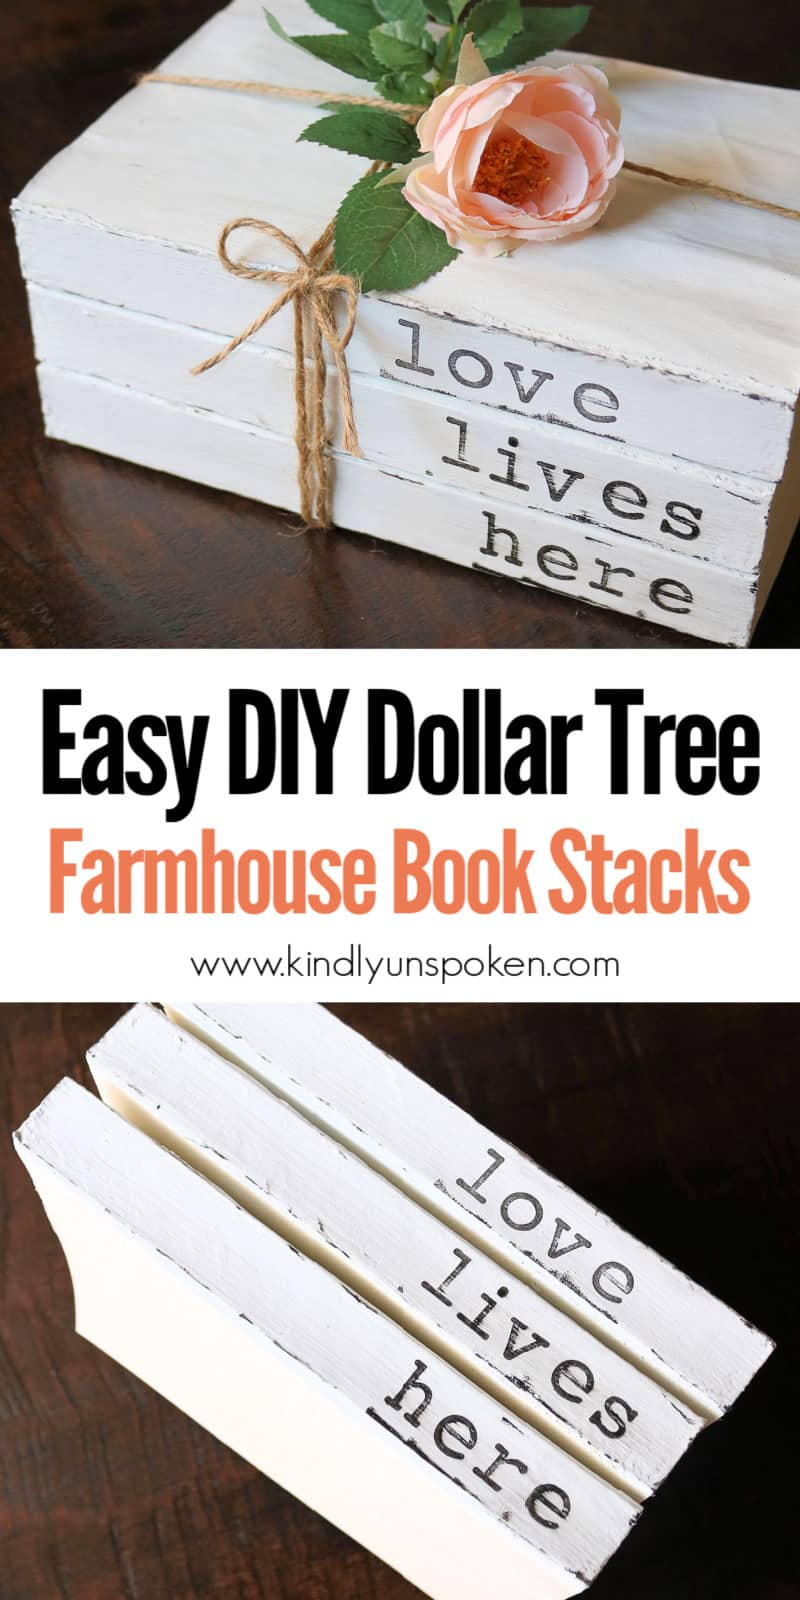 Learn how to make Easy DIY Farmhouse Stacked Hand-Stamped Books using dollar tree books, chalk paint, stamps, twine, and faux flowers. This dollar tree craft is so easy and affordable to create and you can personalize these stacked books with your family's names or favorite phrases! #stackedbooks #stampedbooks #dollartreecraft #dollartreediy #diy #personalizedbooks